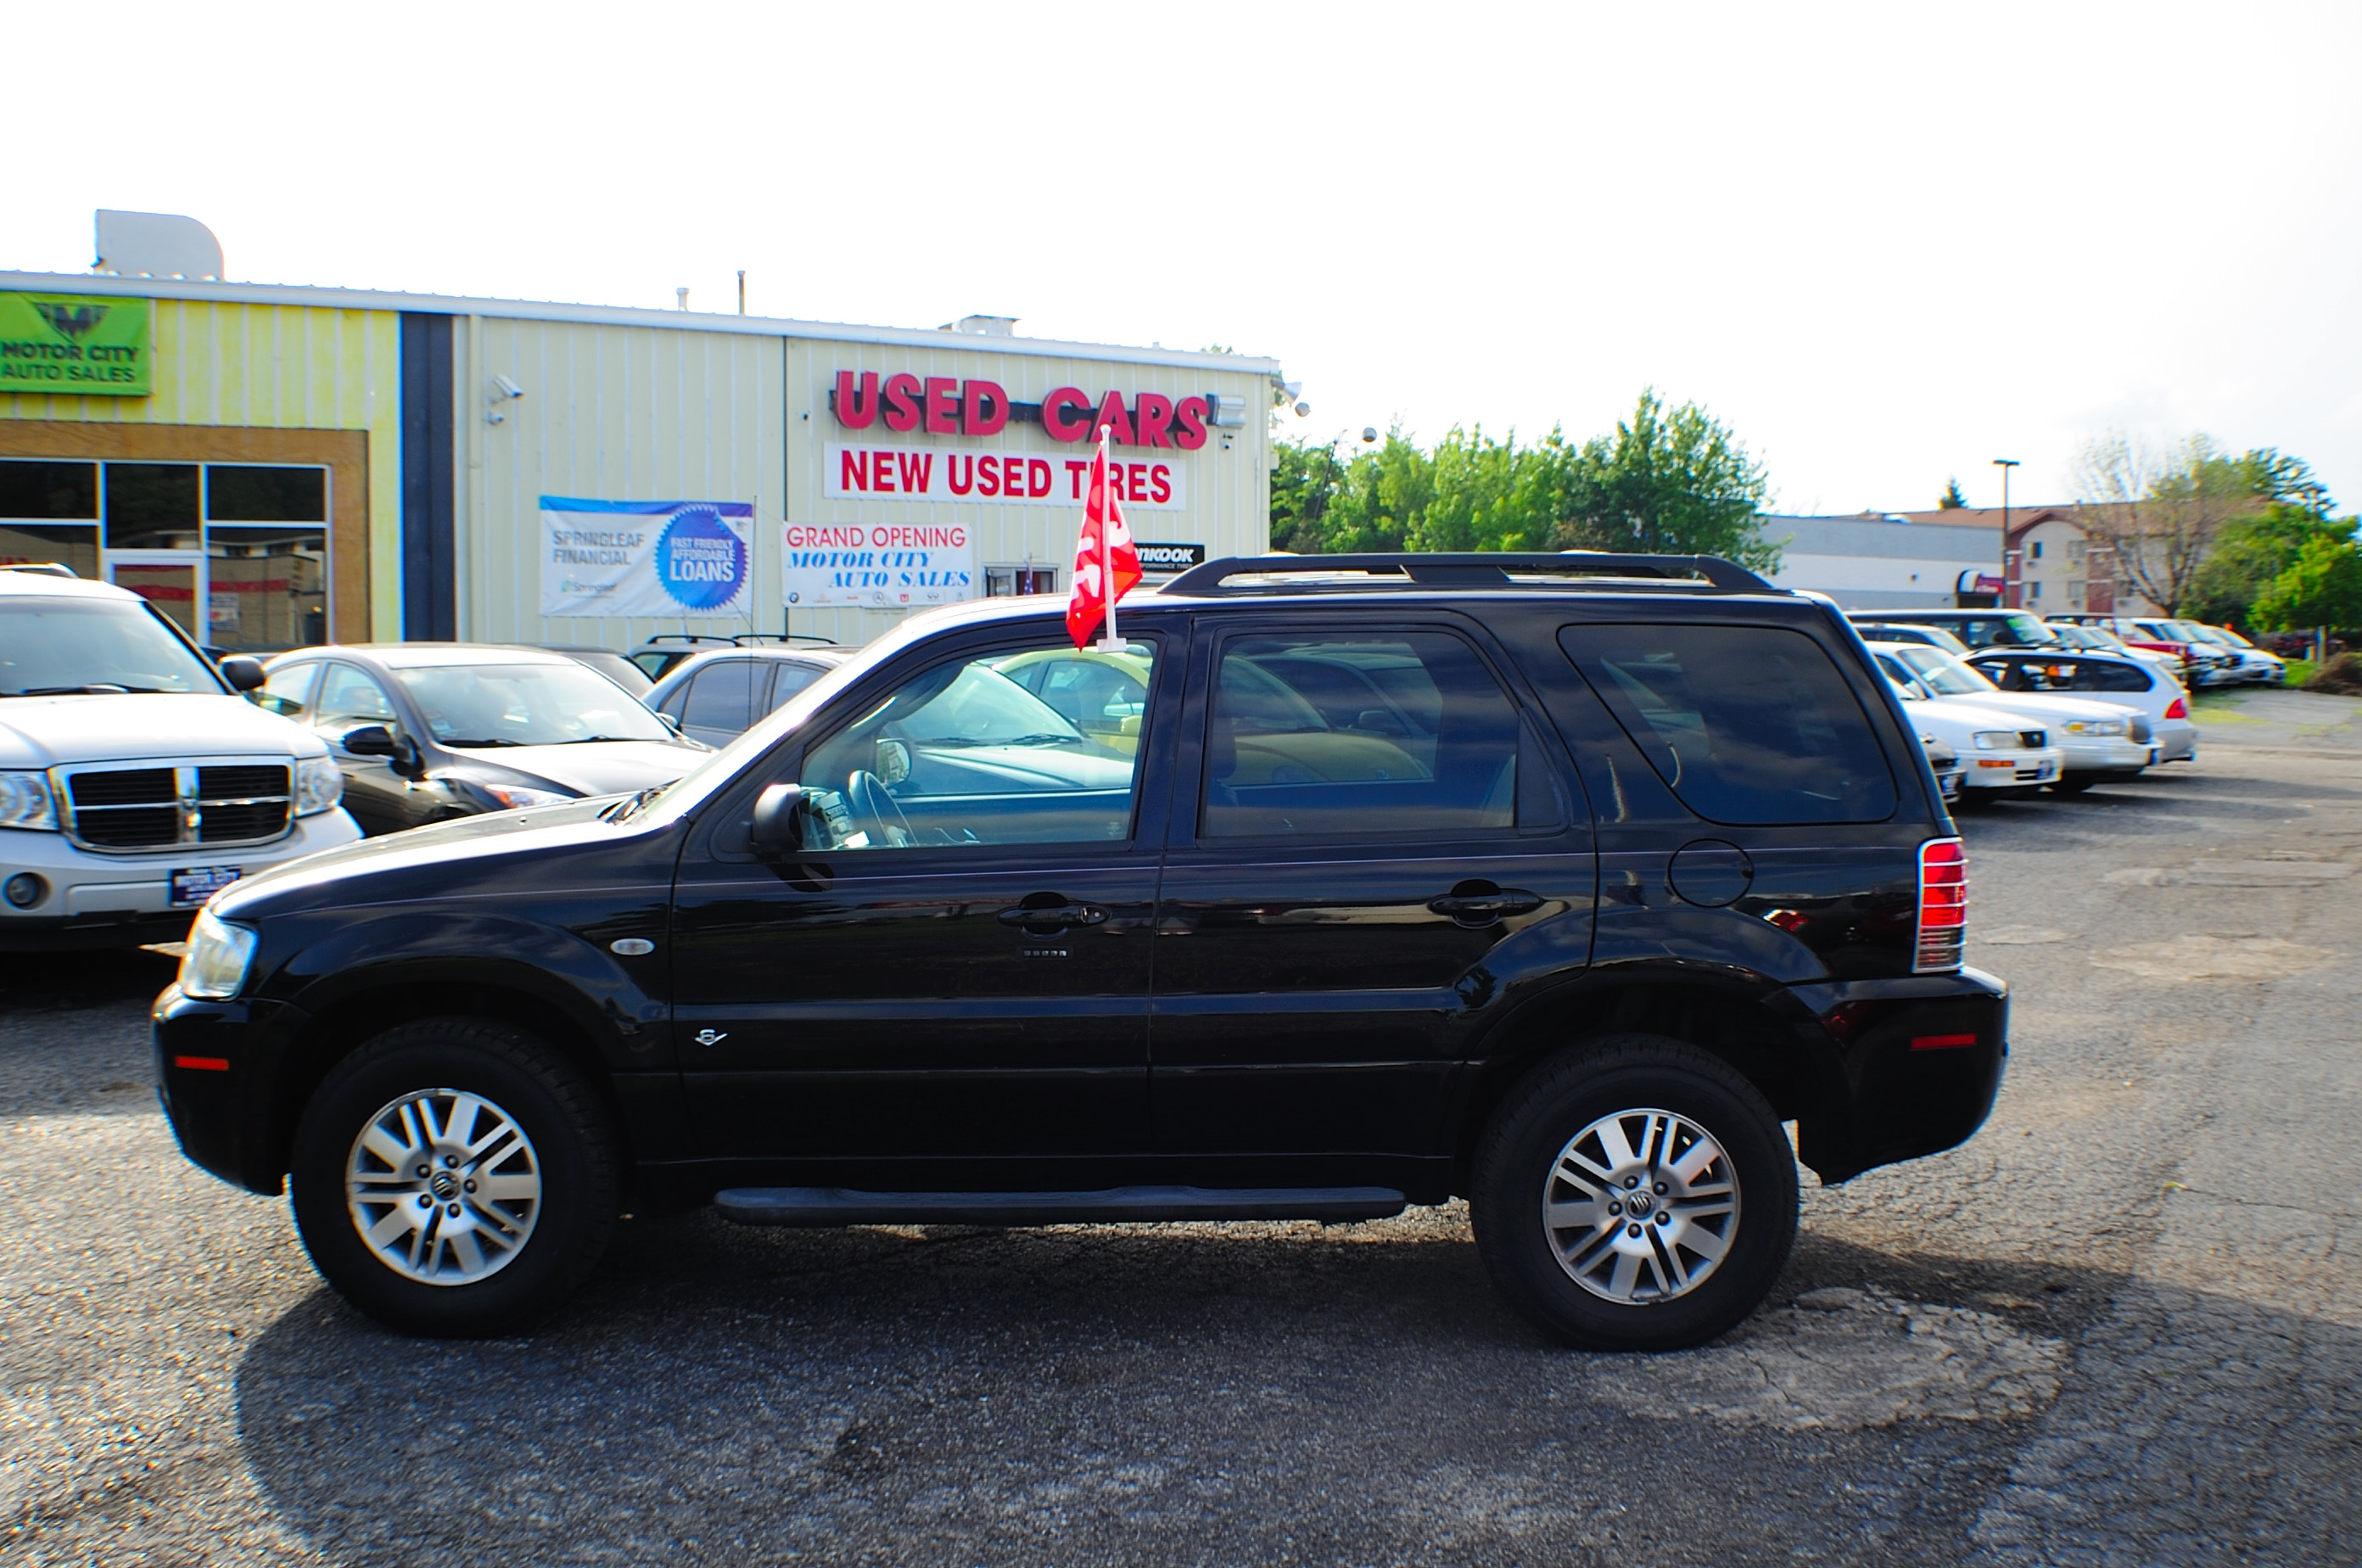 2006 Mercury Mariner Black AWD V6 Used SUV Wagon Sale Antioch Grayslake